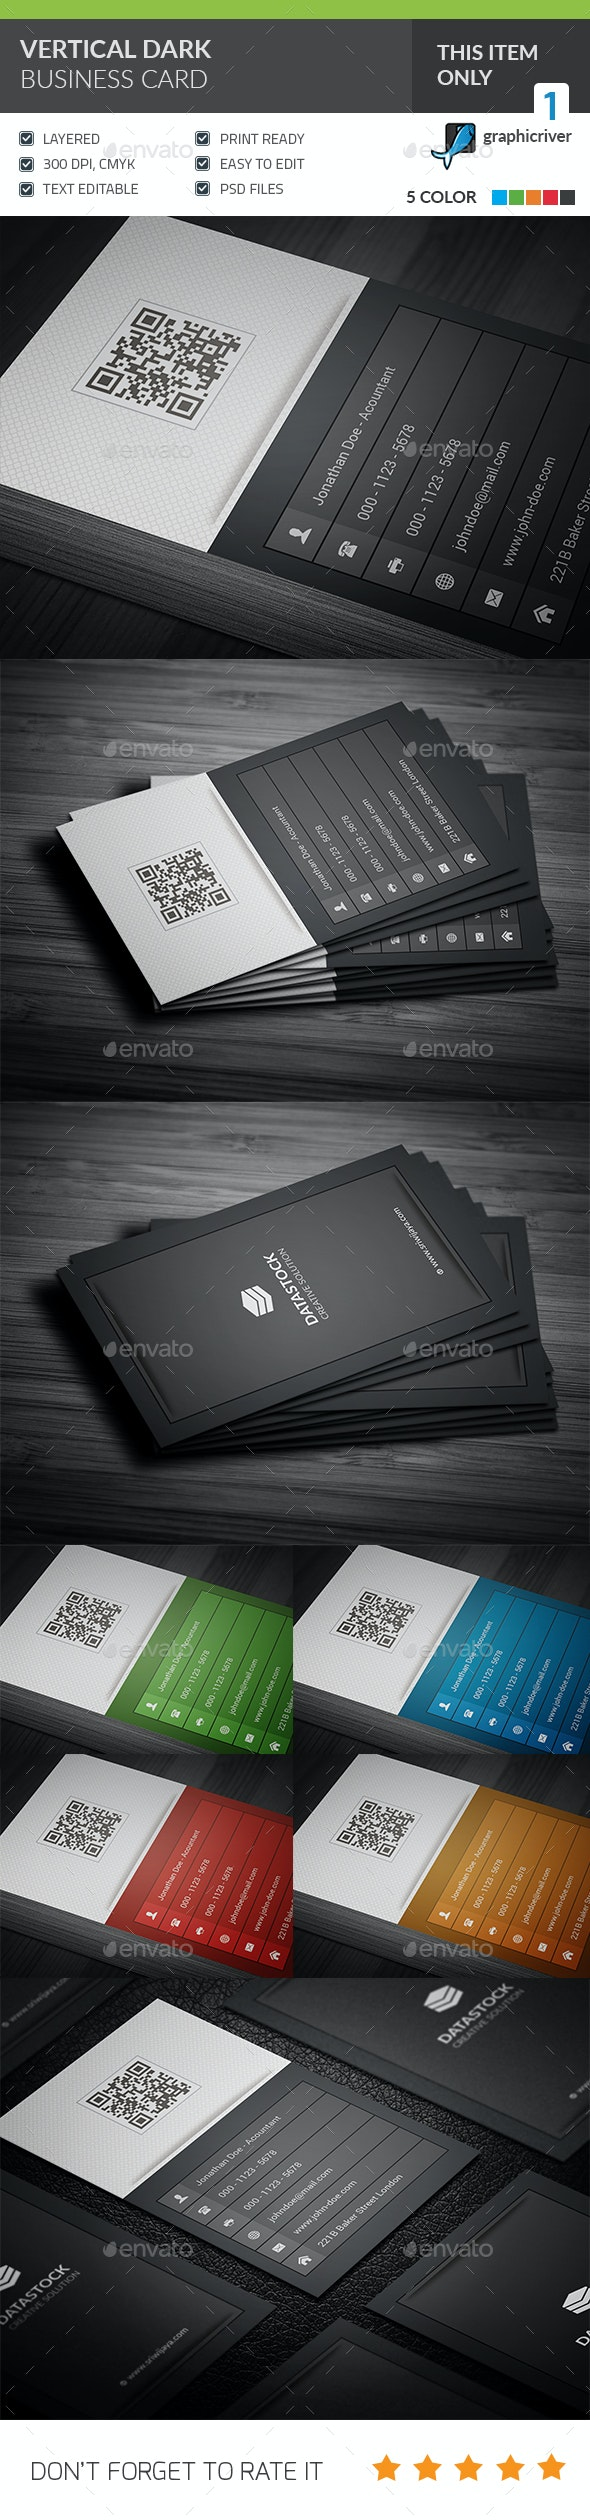 Vertical Dark Corporate Business Card - Corporate Business Cards